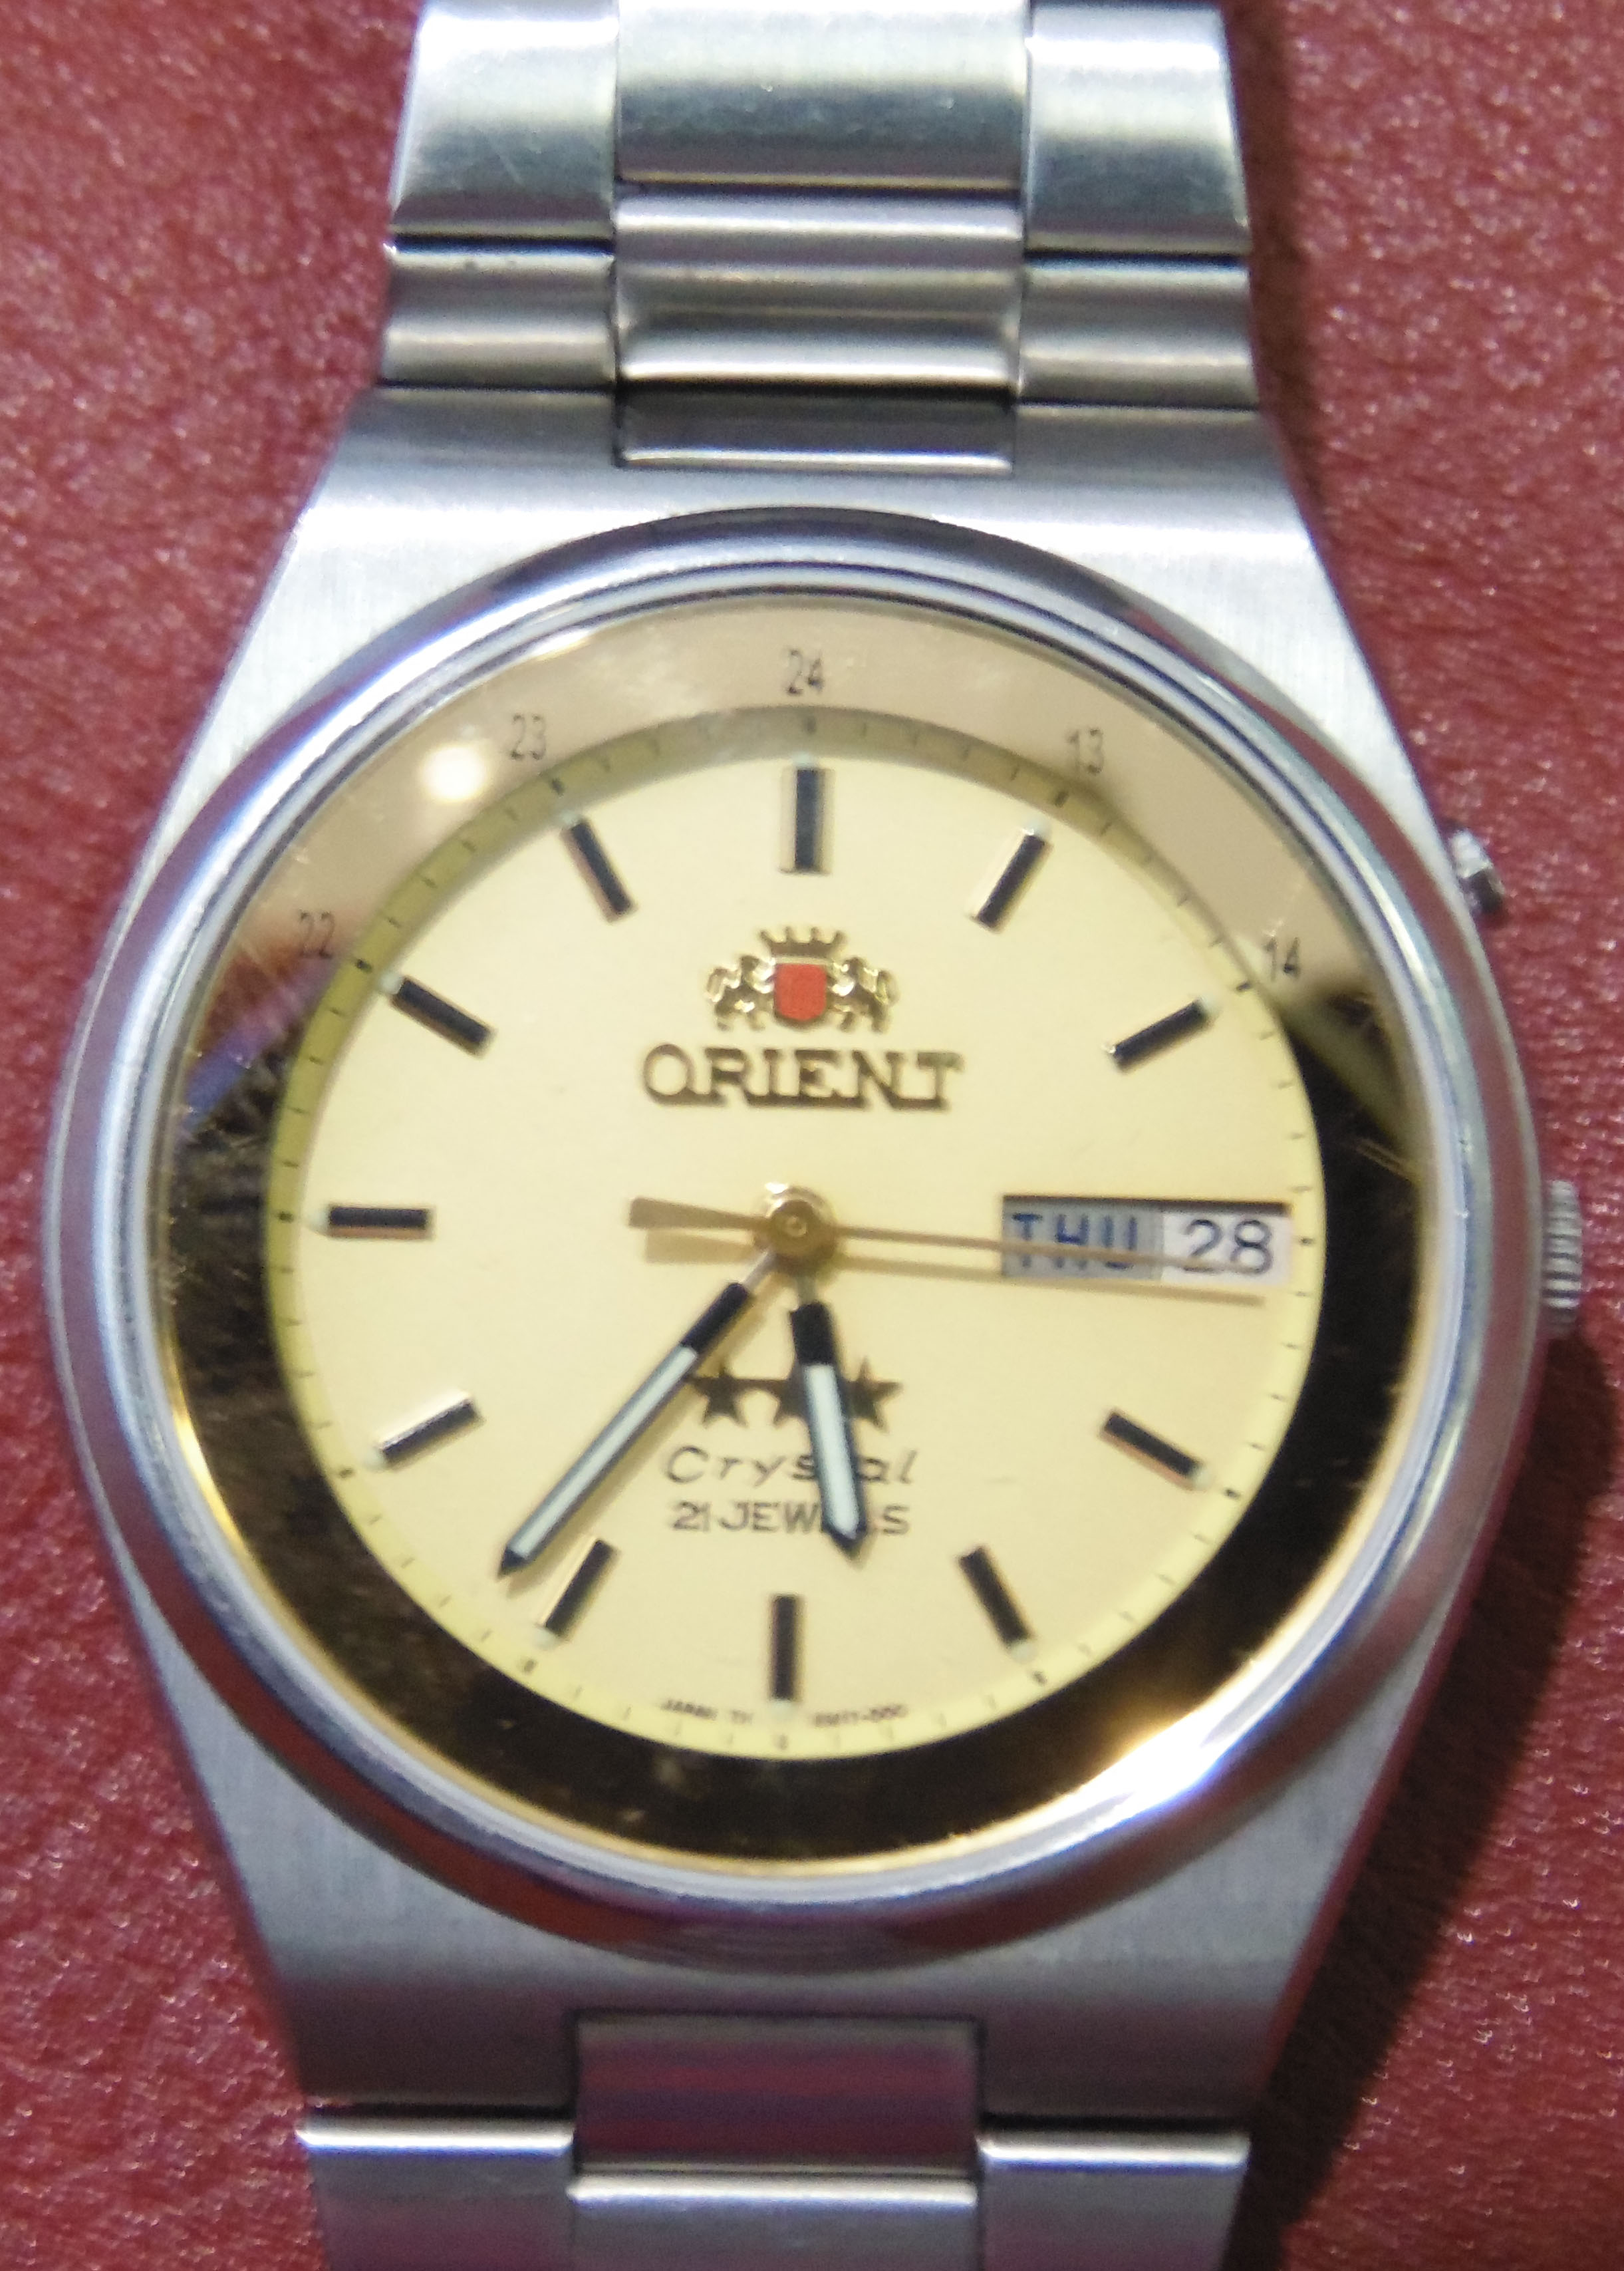 Orient Crystal 21 Jewels Day Date Automatic Watch In